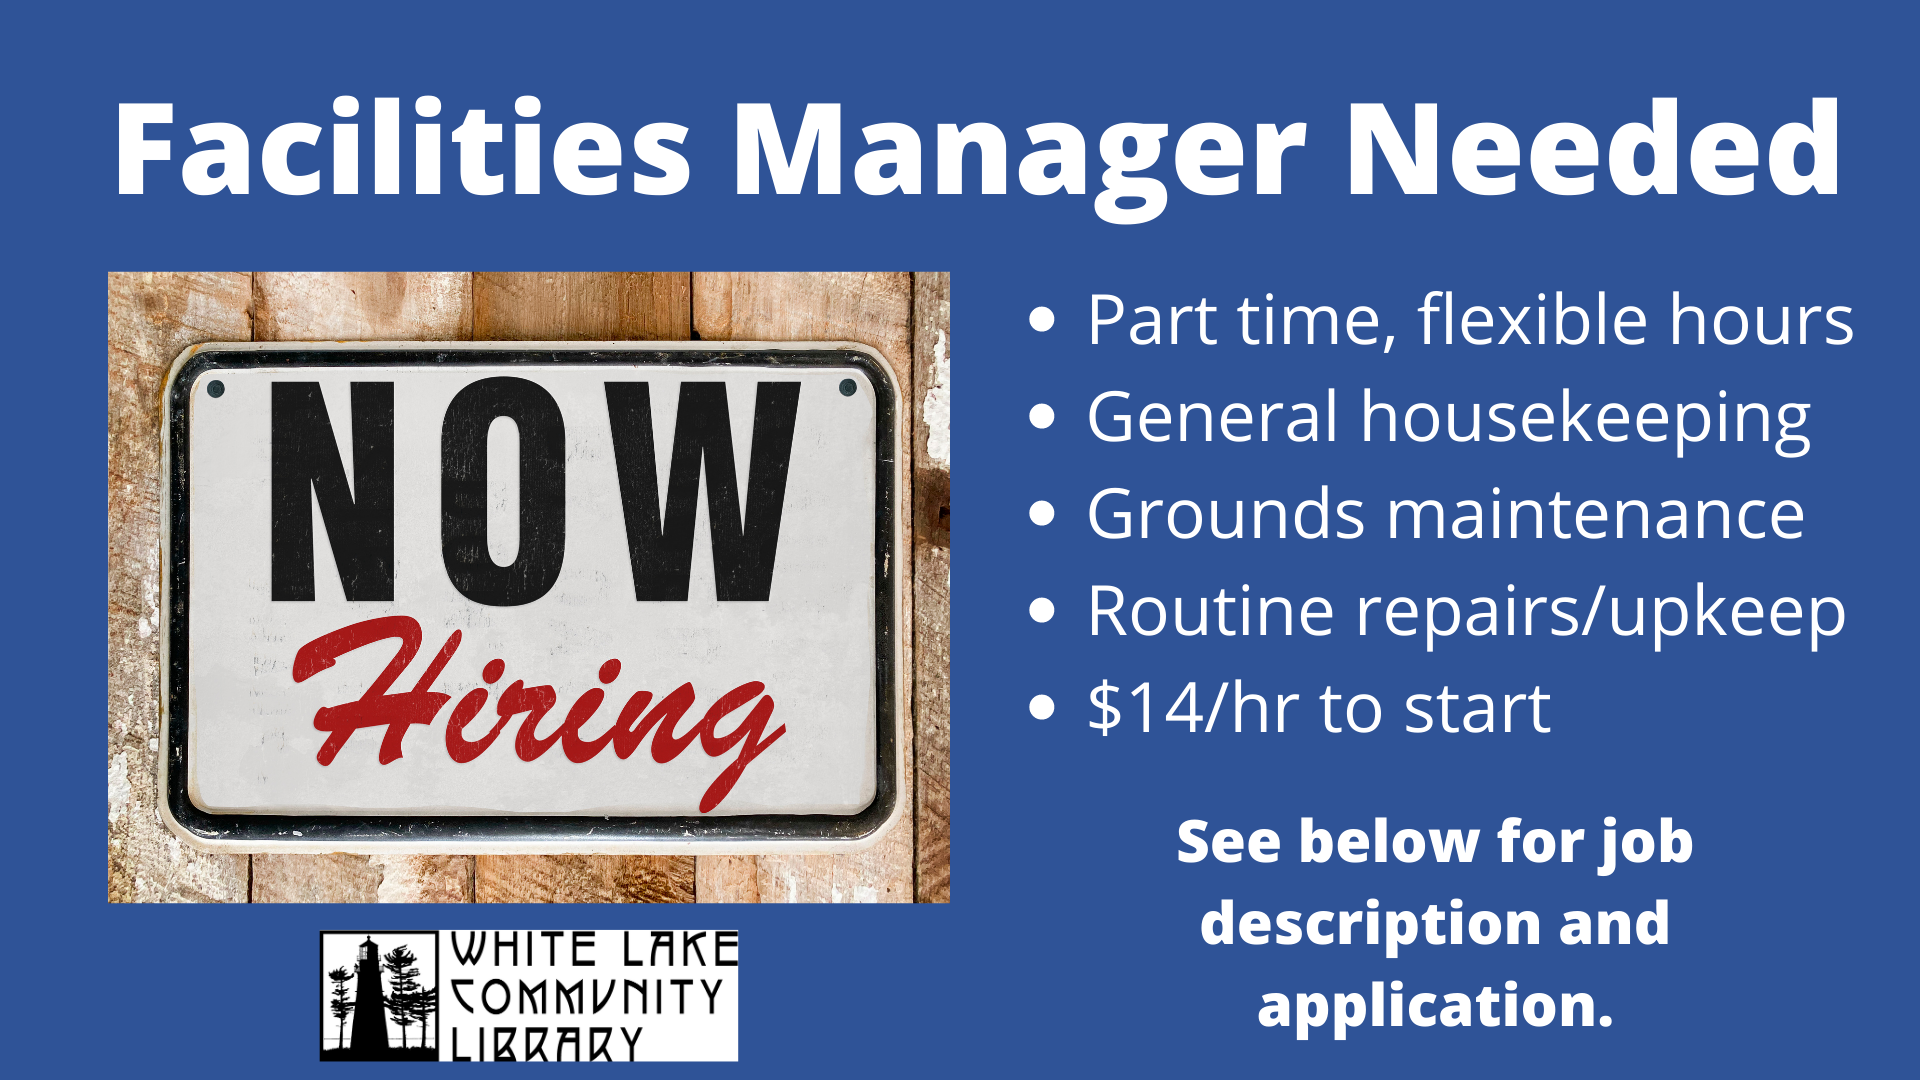 Facilities Manager see below